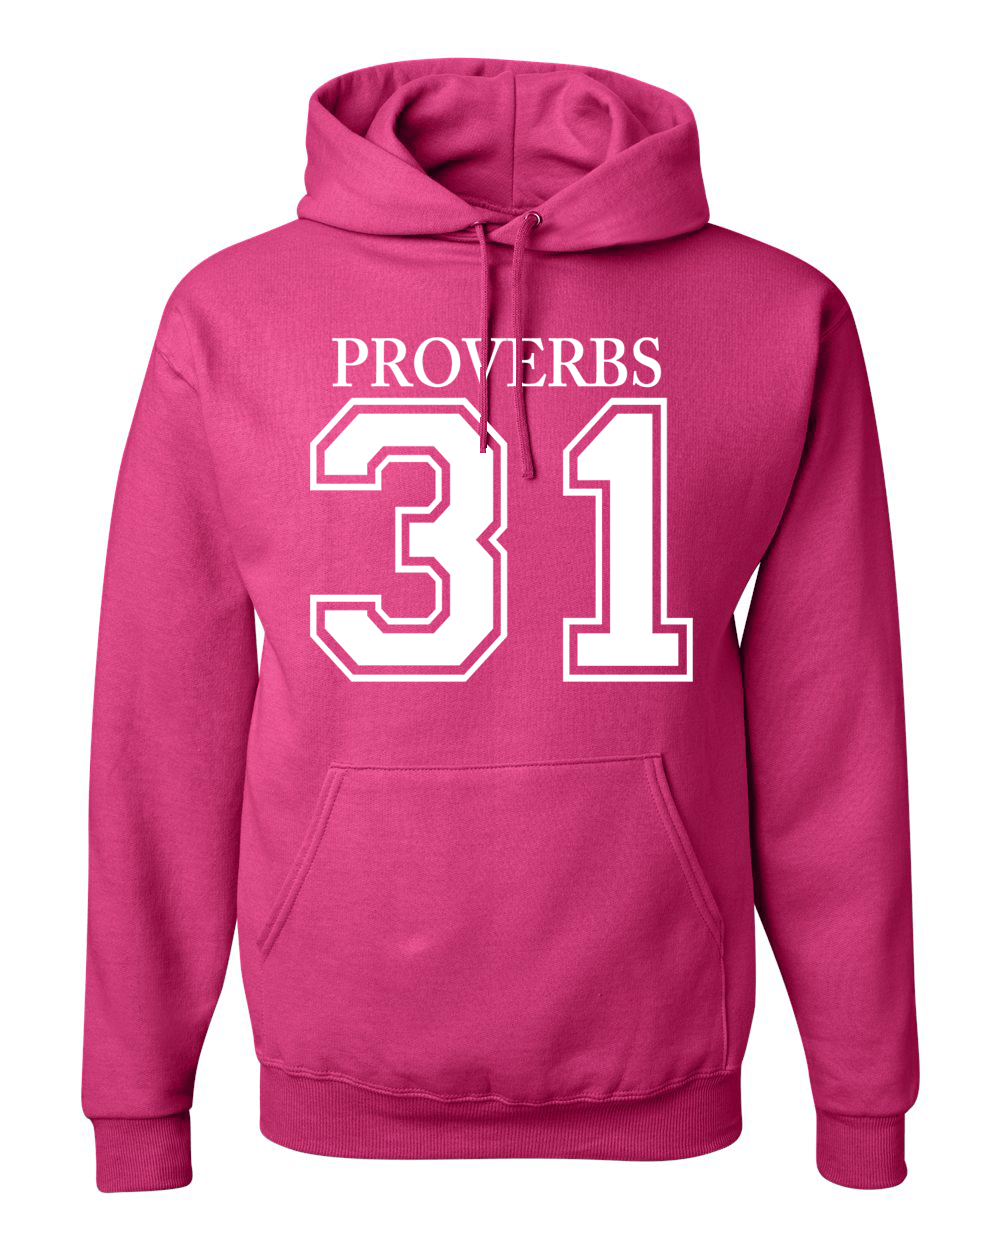 Proverbs 31 Hooded Sweatshirt - Small / Pink - Christian T-Shirt | Christian Gifts | Christian Apparel - 1